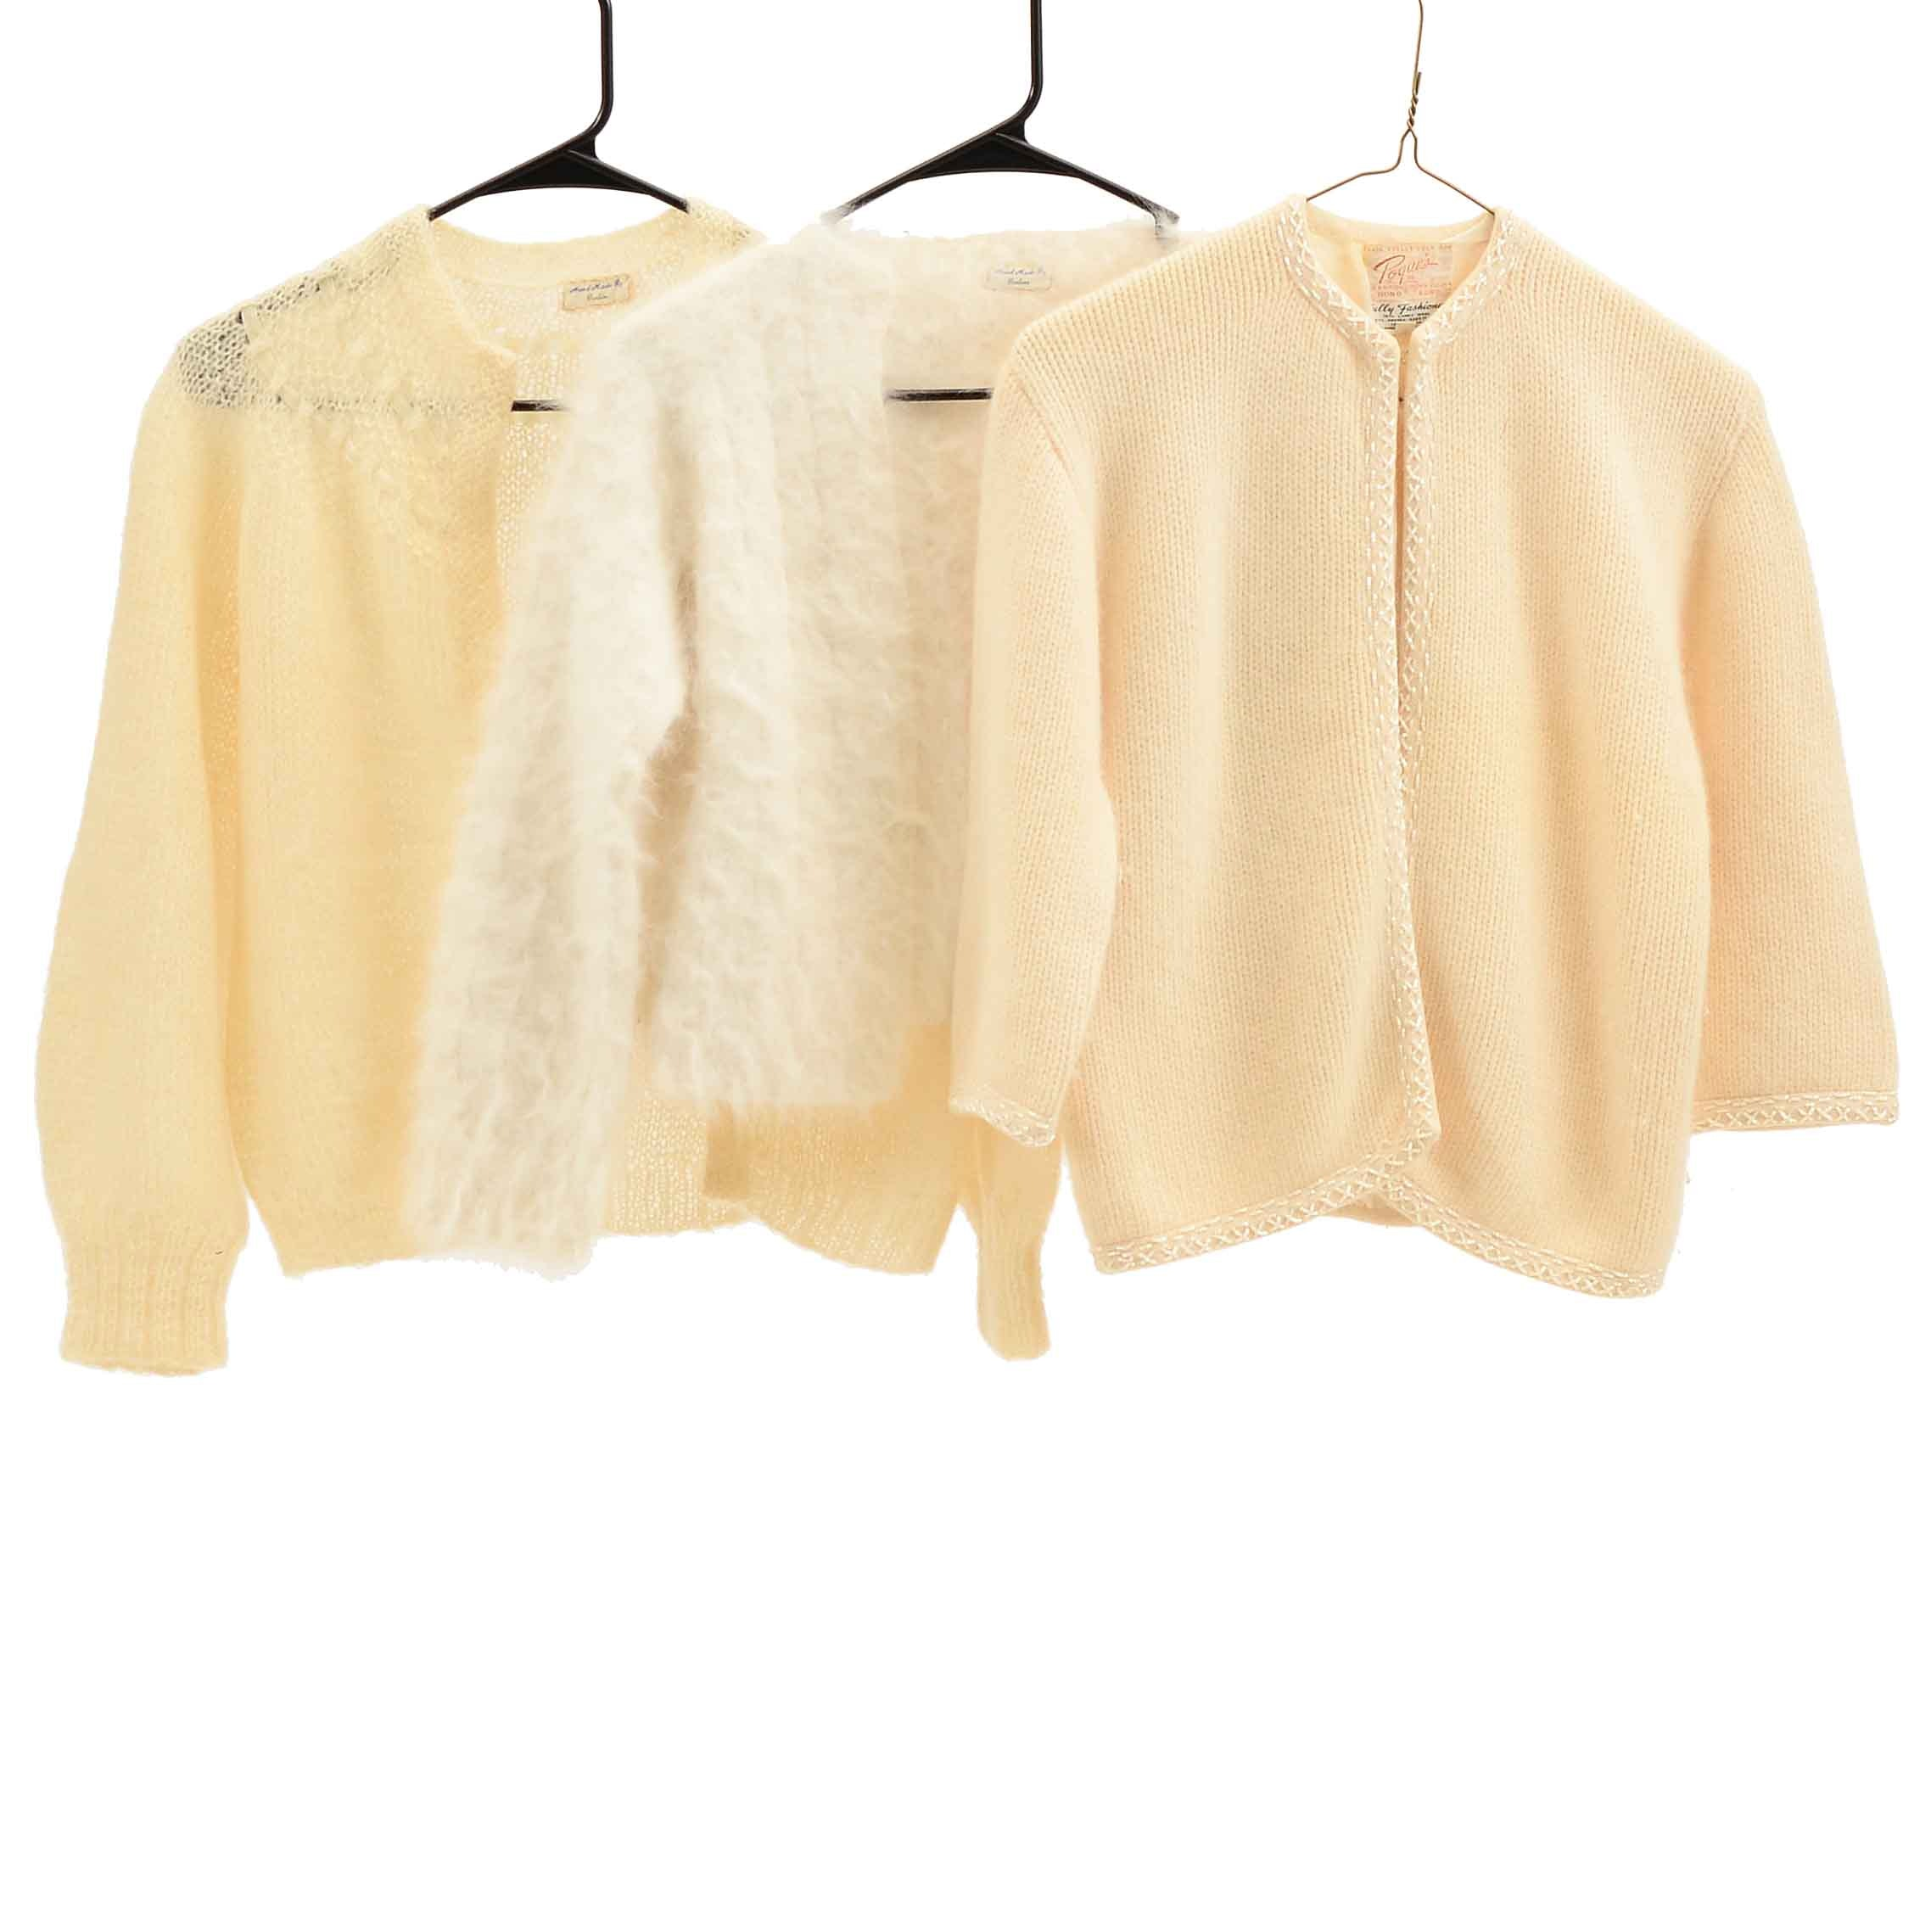 Vintage Off-White Knit Sweaters